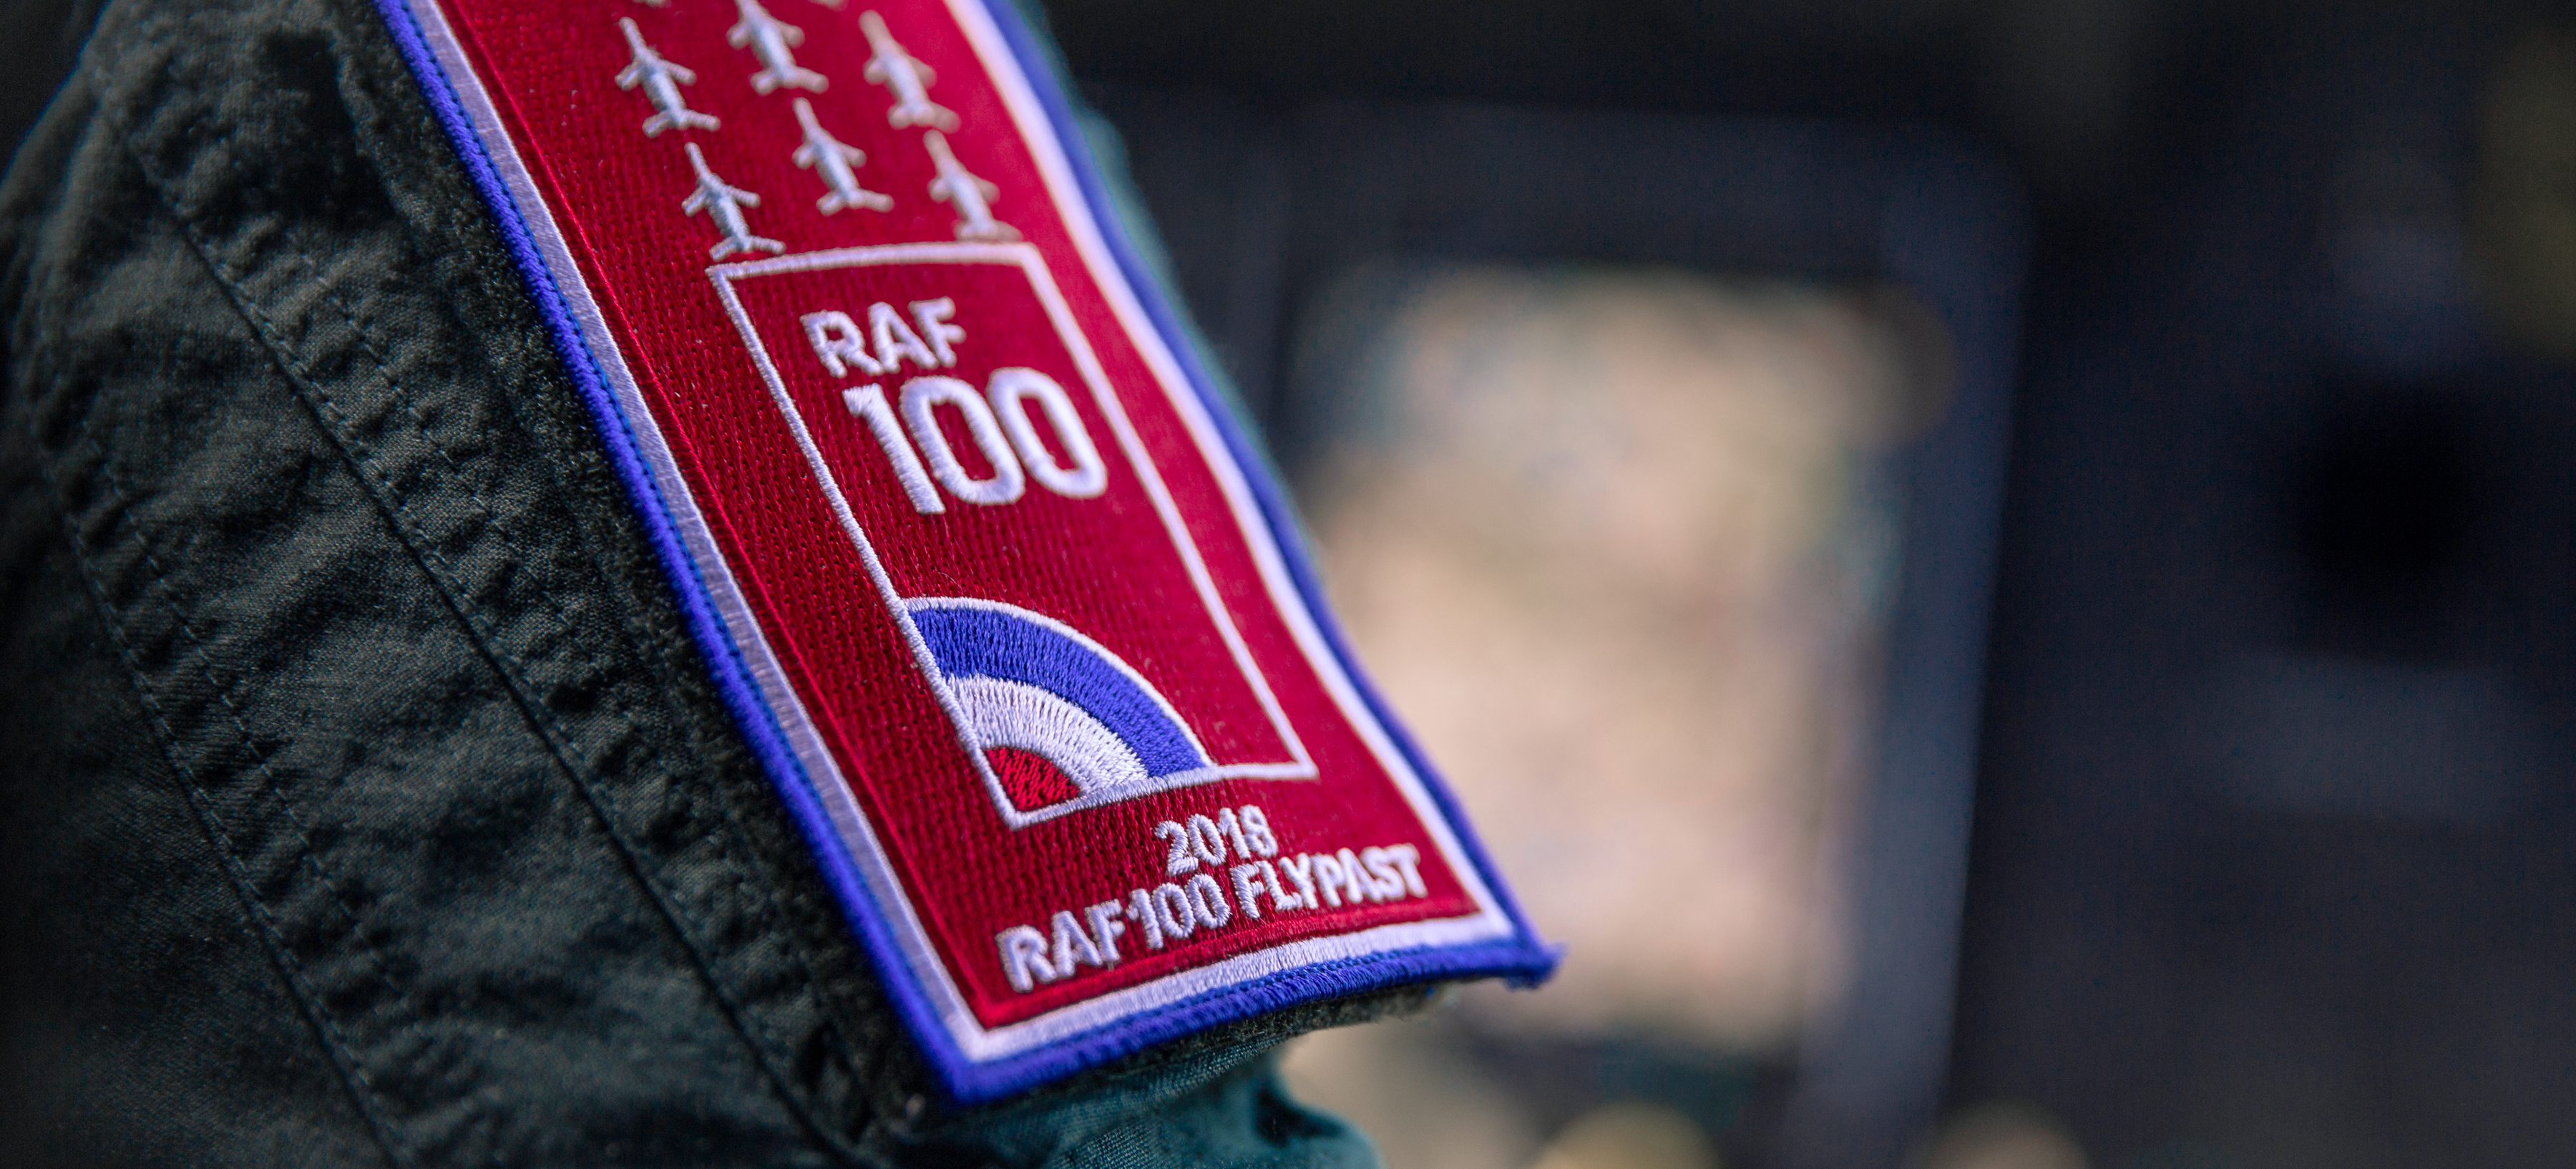 RAF 100 badge on the sleeve of an RAF helicopter pilot about to take part in the Centenary Flypast over Buckingham Palace in London